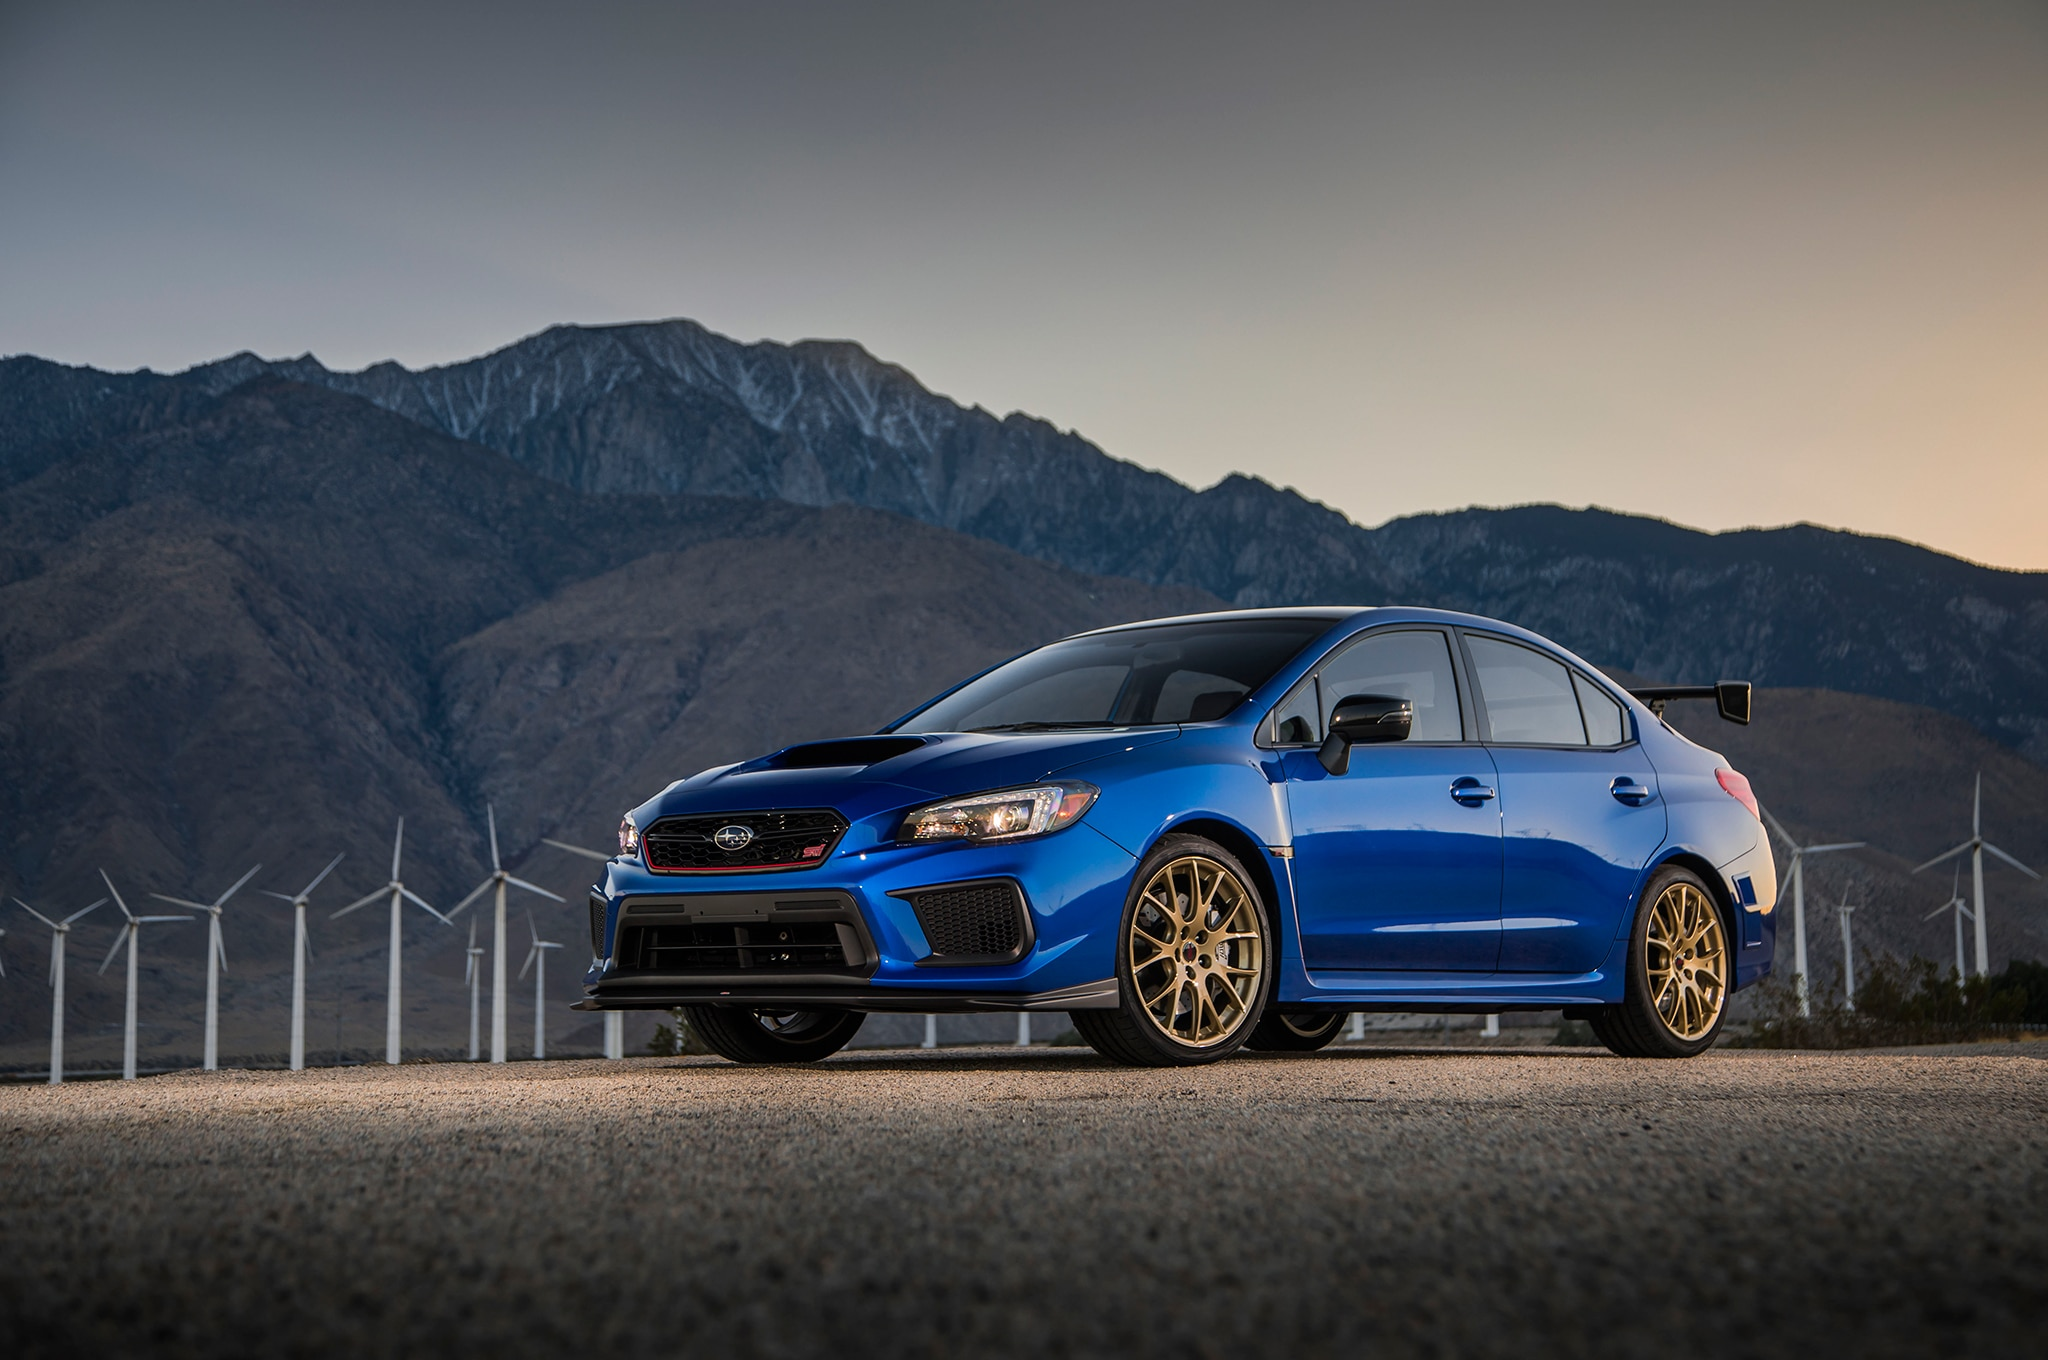 2018 subaru wrx sti type ra first drive review automobile magazine. Black Bedroom Furniture Sets. Home Design Ideas